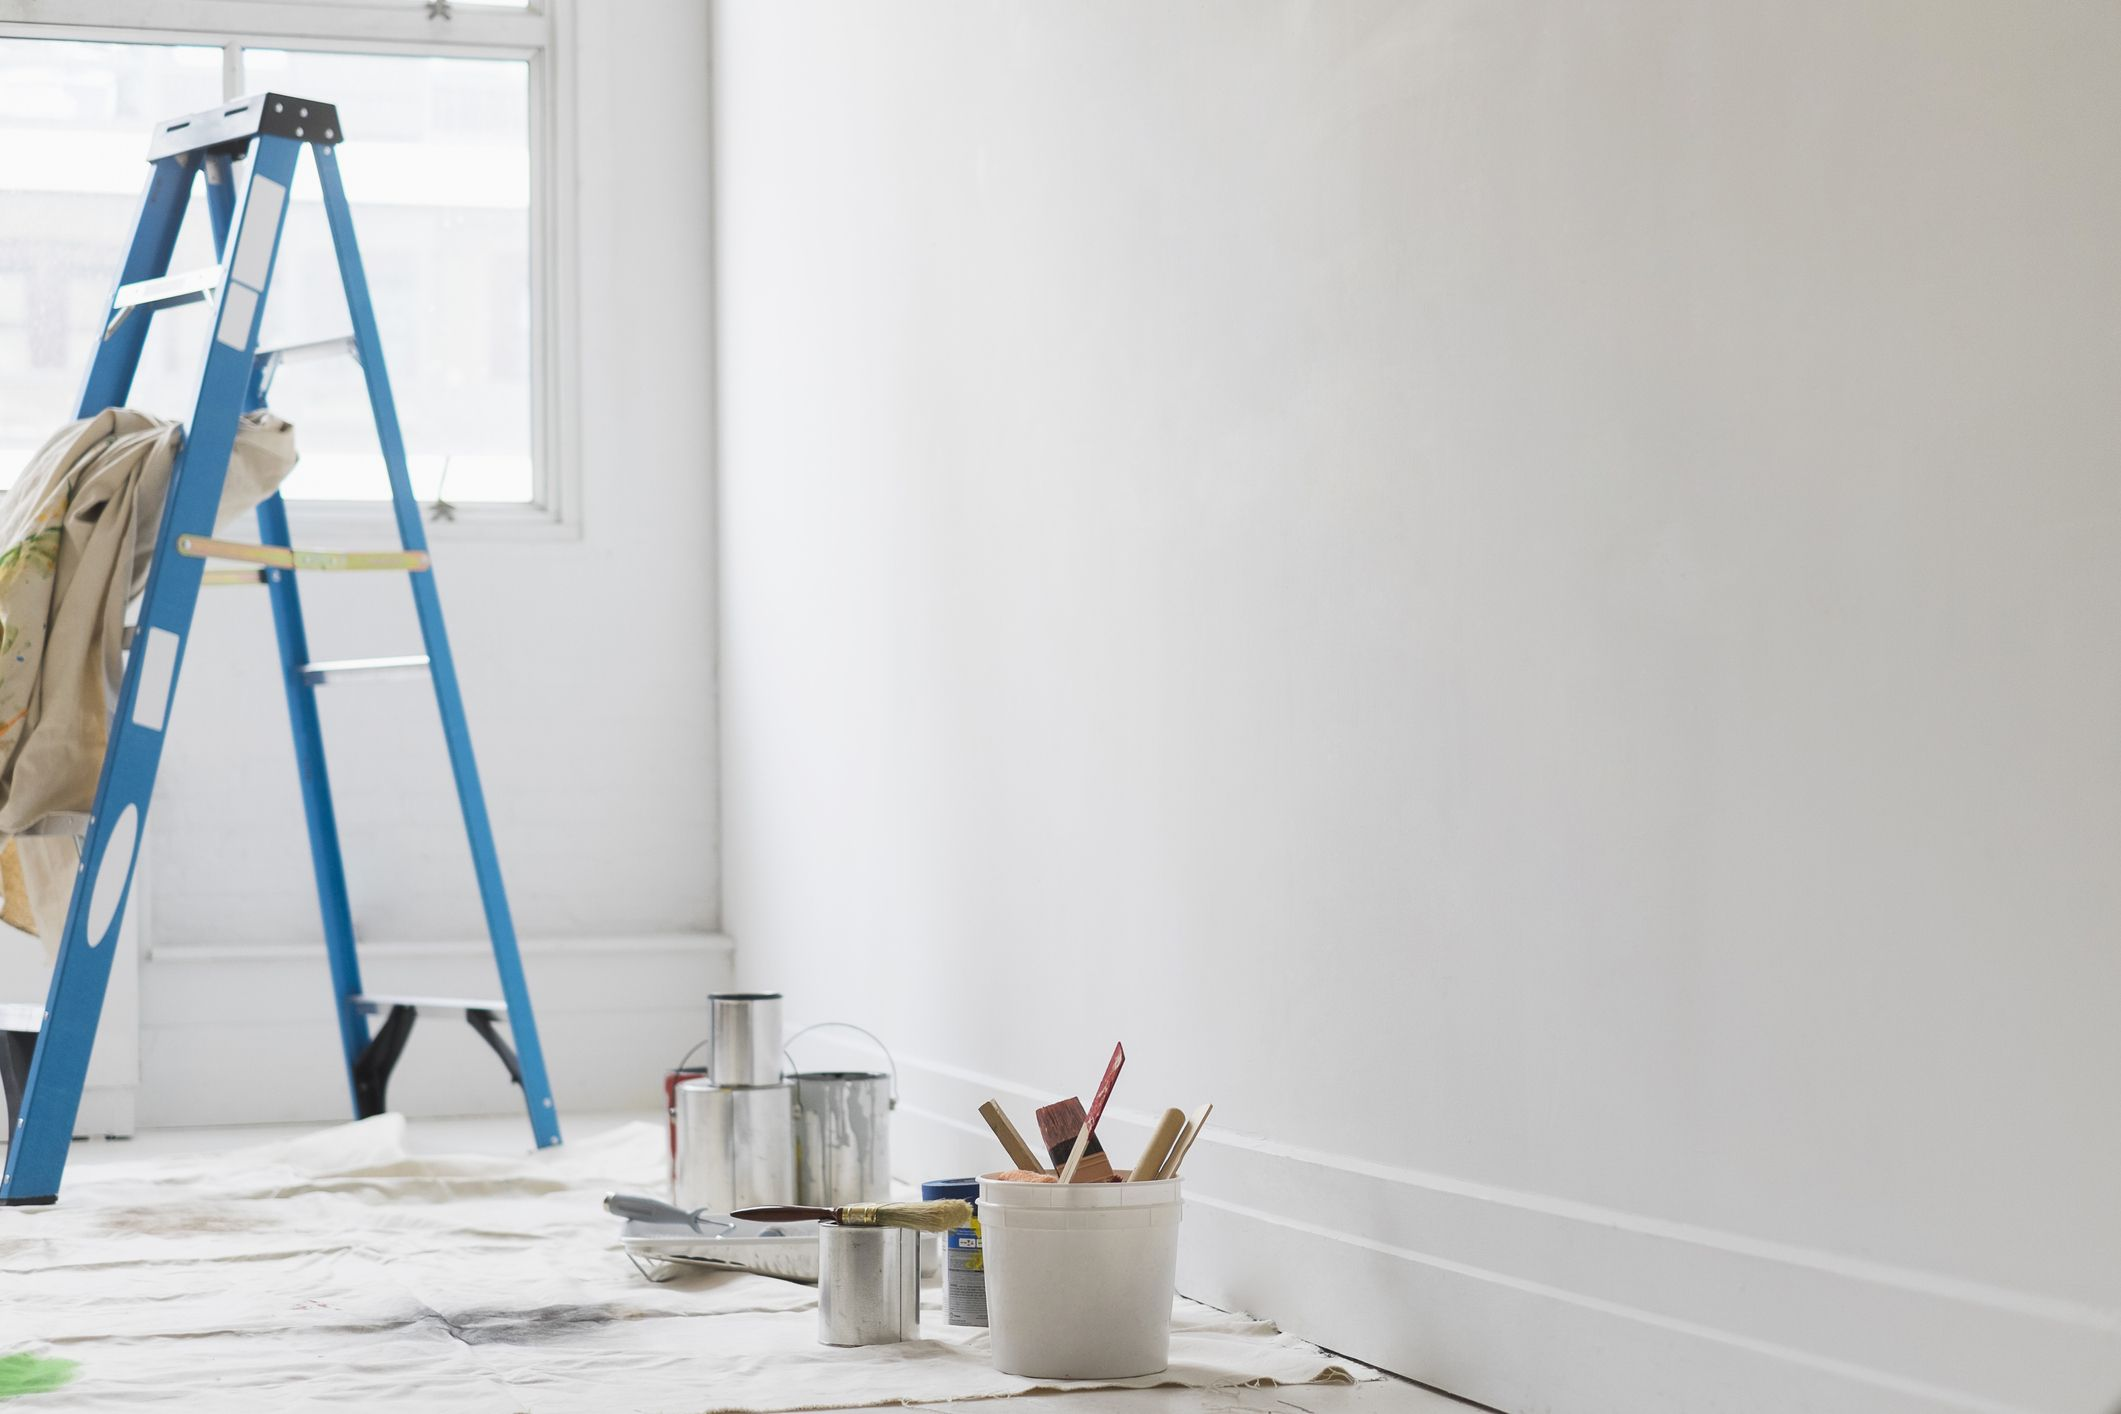 The 6-step etiquette guide to remember when you have a builder in your home